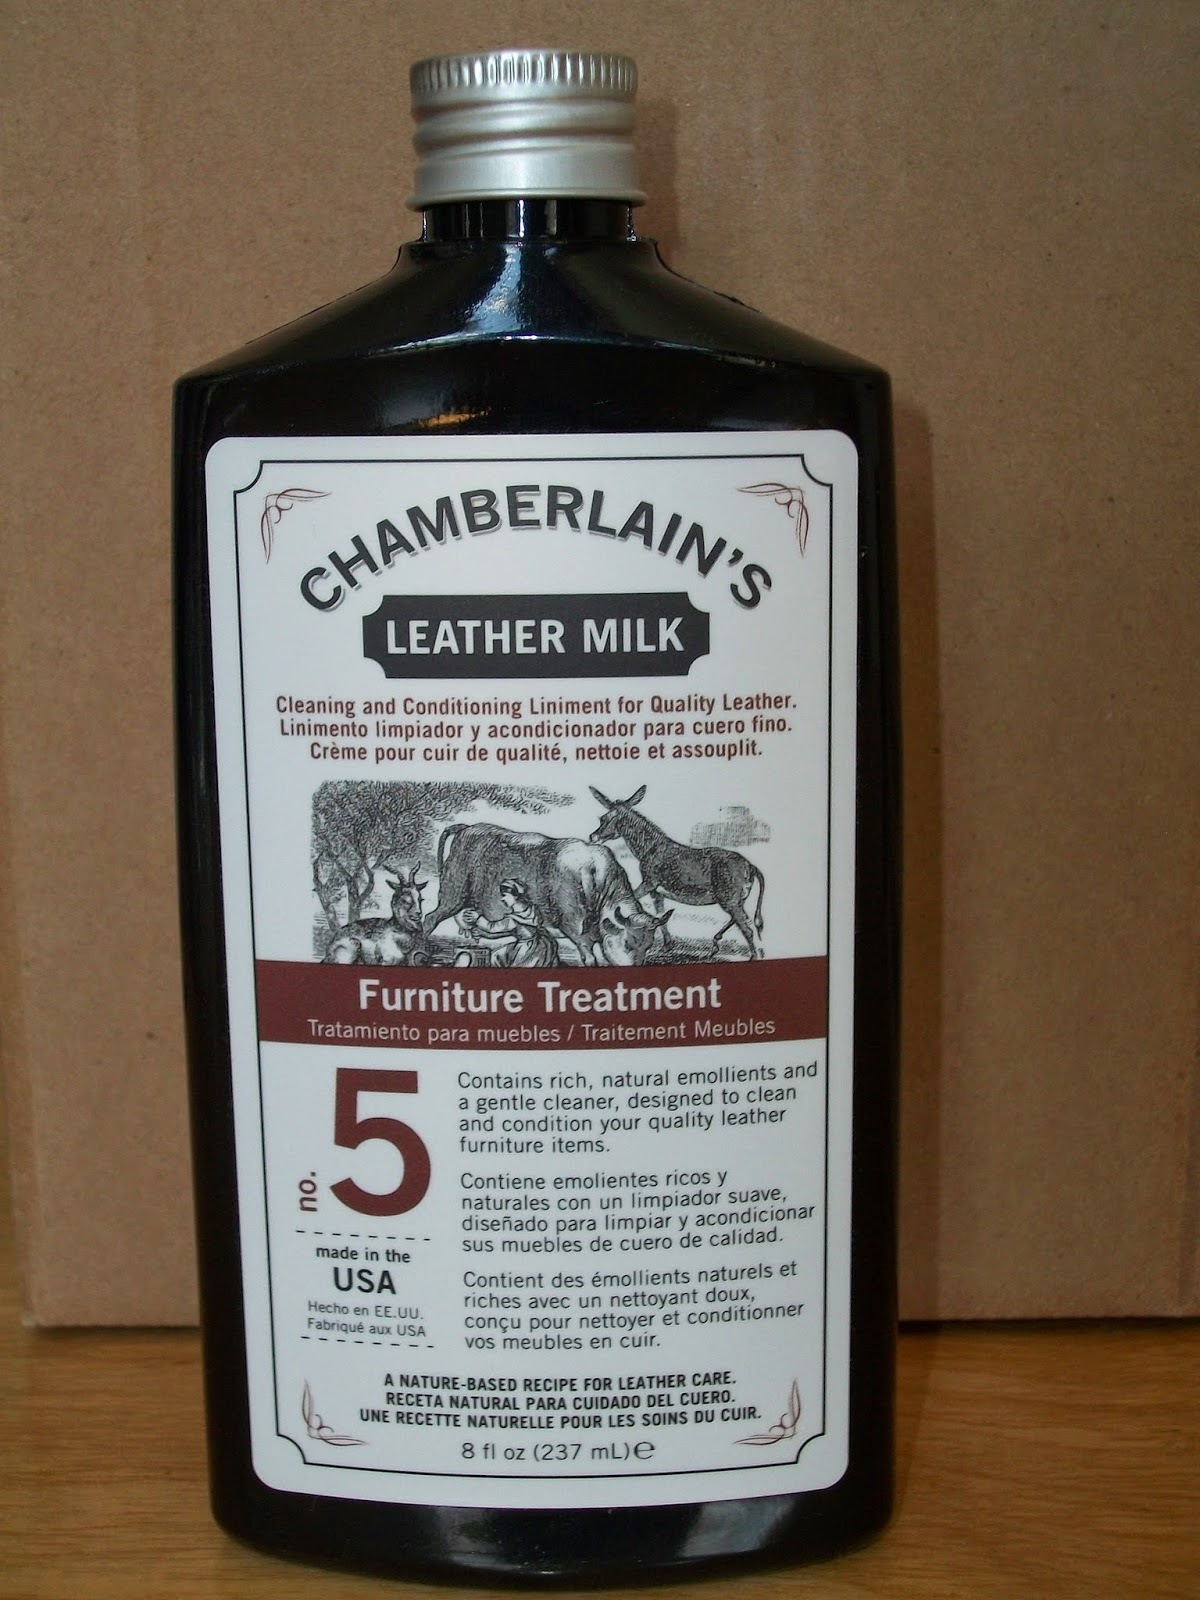 Good Leather Cleaner For Sofas Sofa Next Mom Knows Best Healthy Recipes Fitness Parenting Protect And Clean Your Furniture With Chamberlain S Milk Treatment No